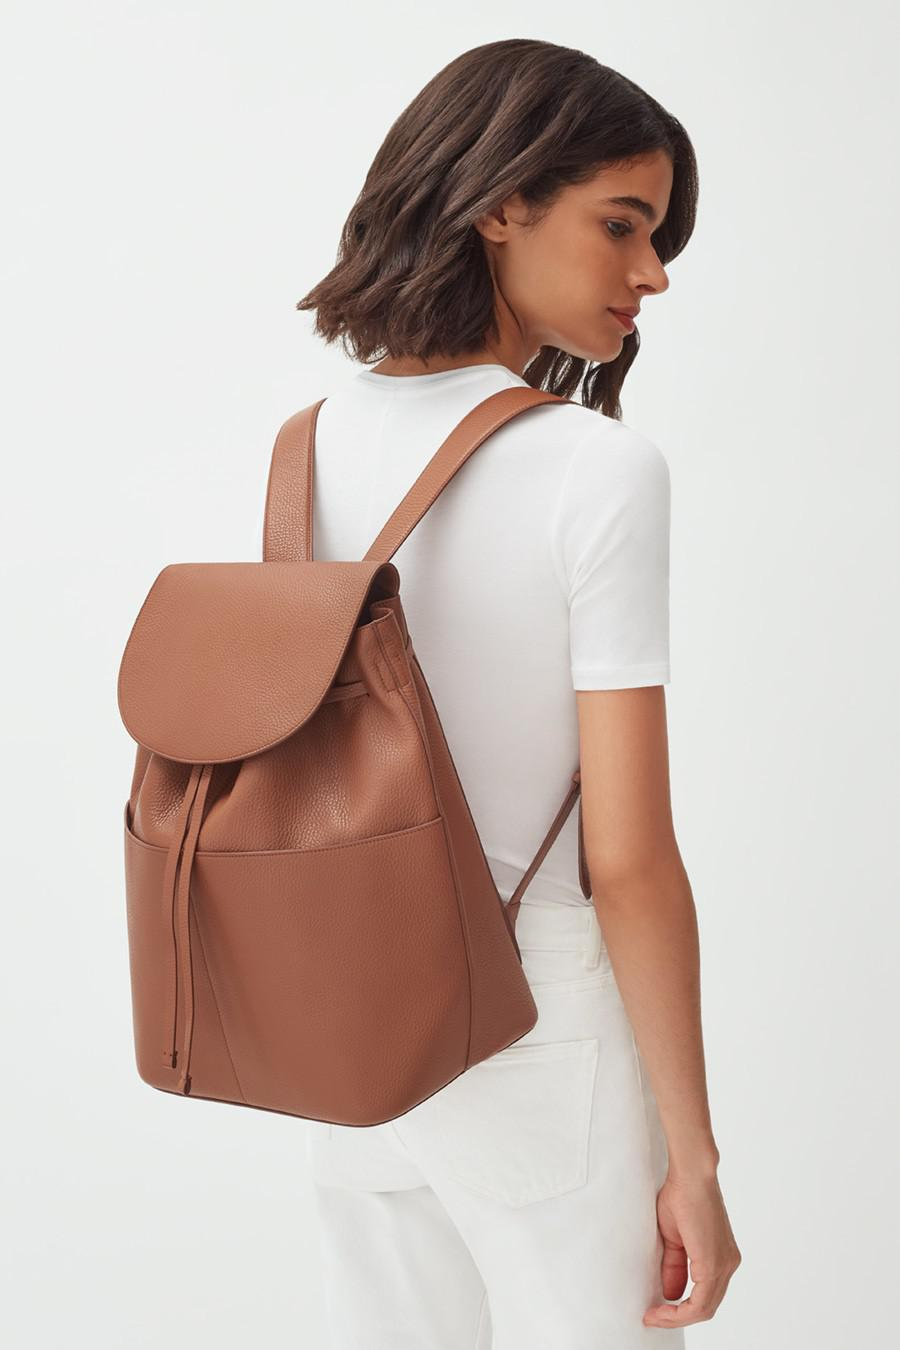 Women's Large Leather Backpack in Caramel | Pebbled Leather by Cuyana 5